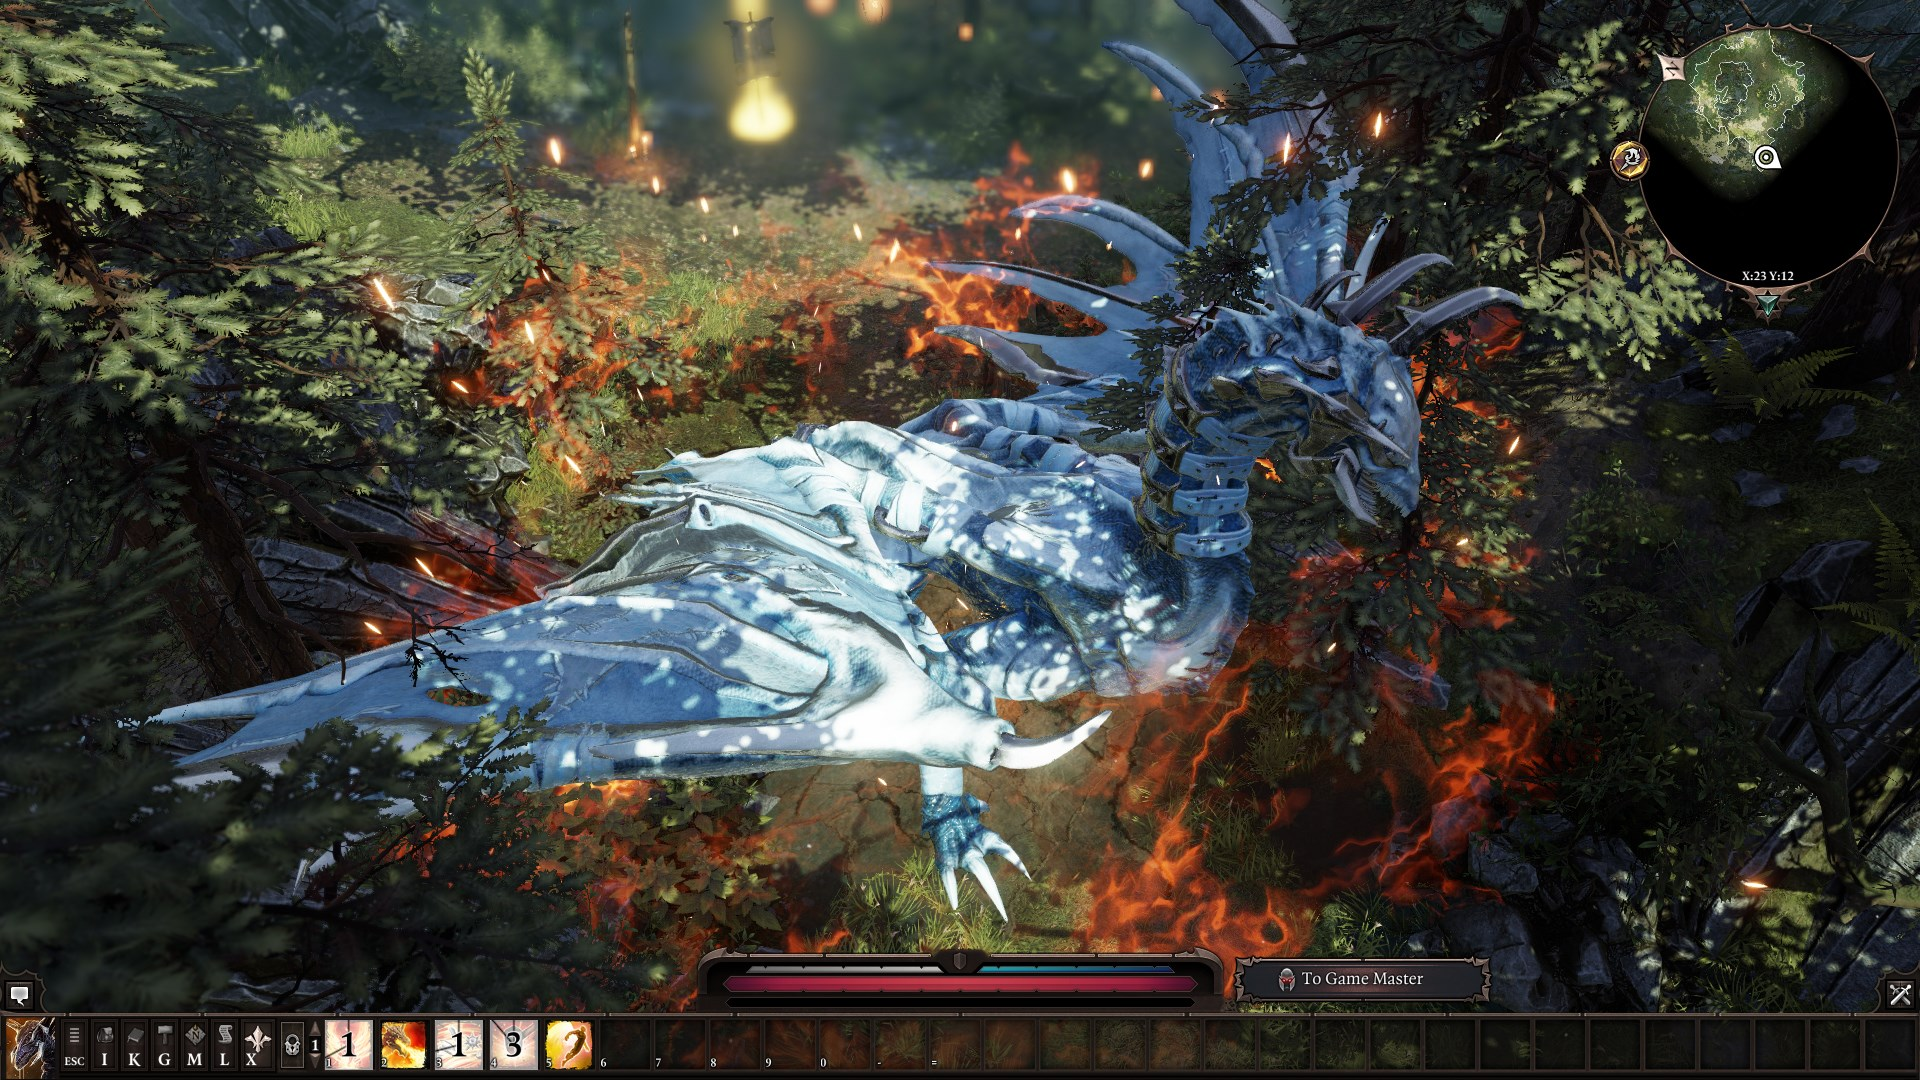 Major Divinity: Original Sin 2 patch is now live on Steam